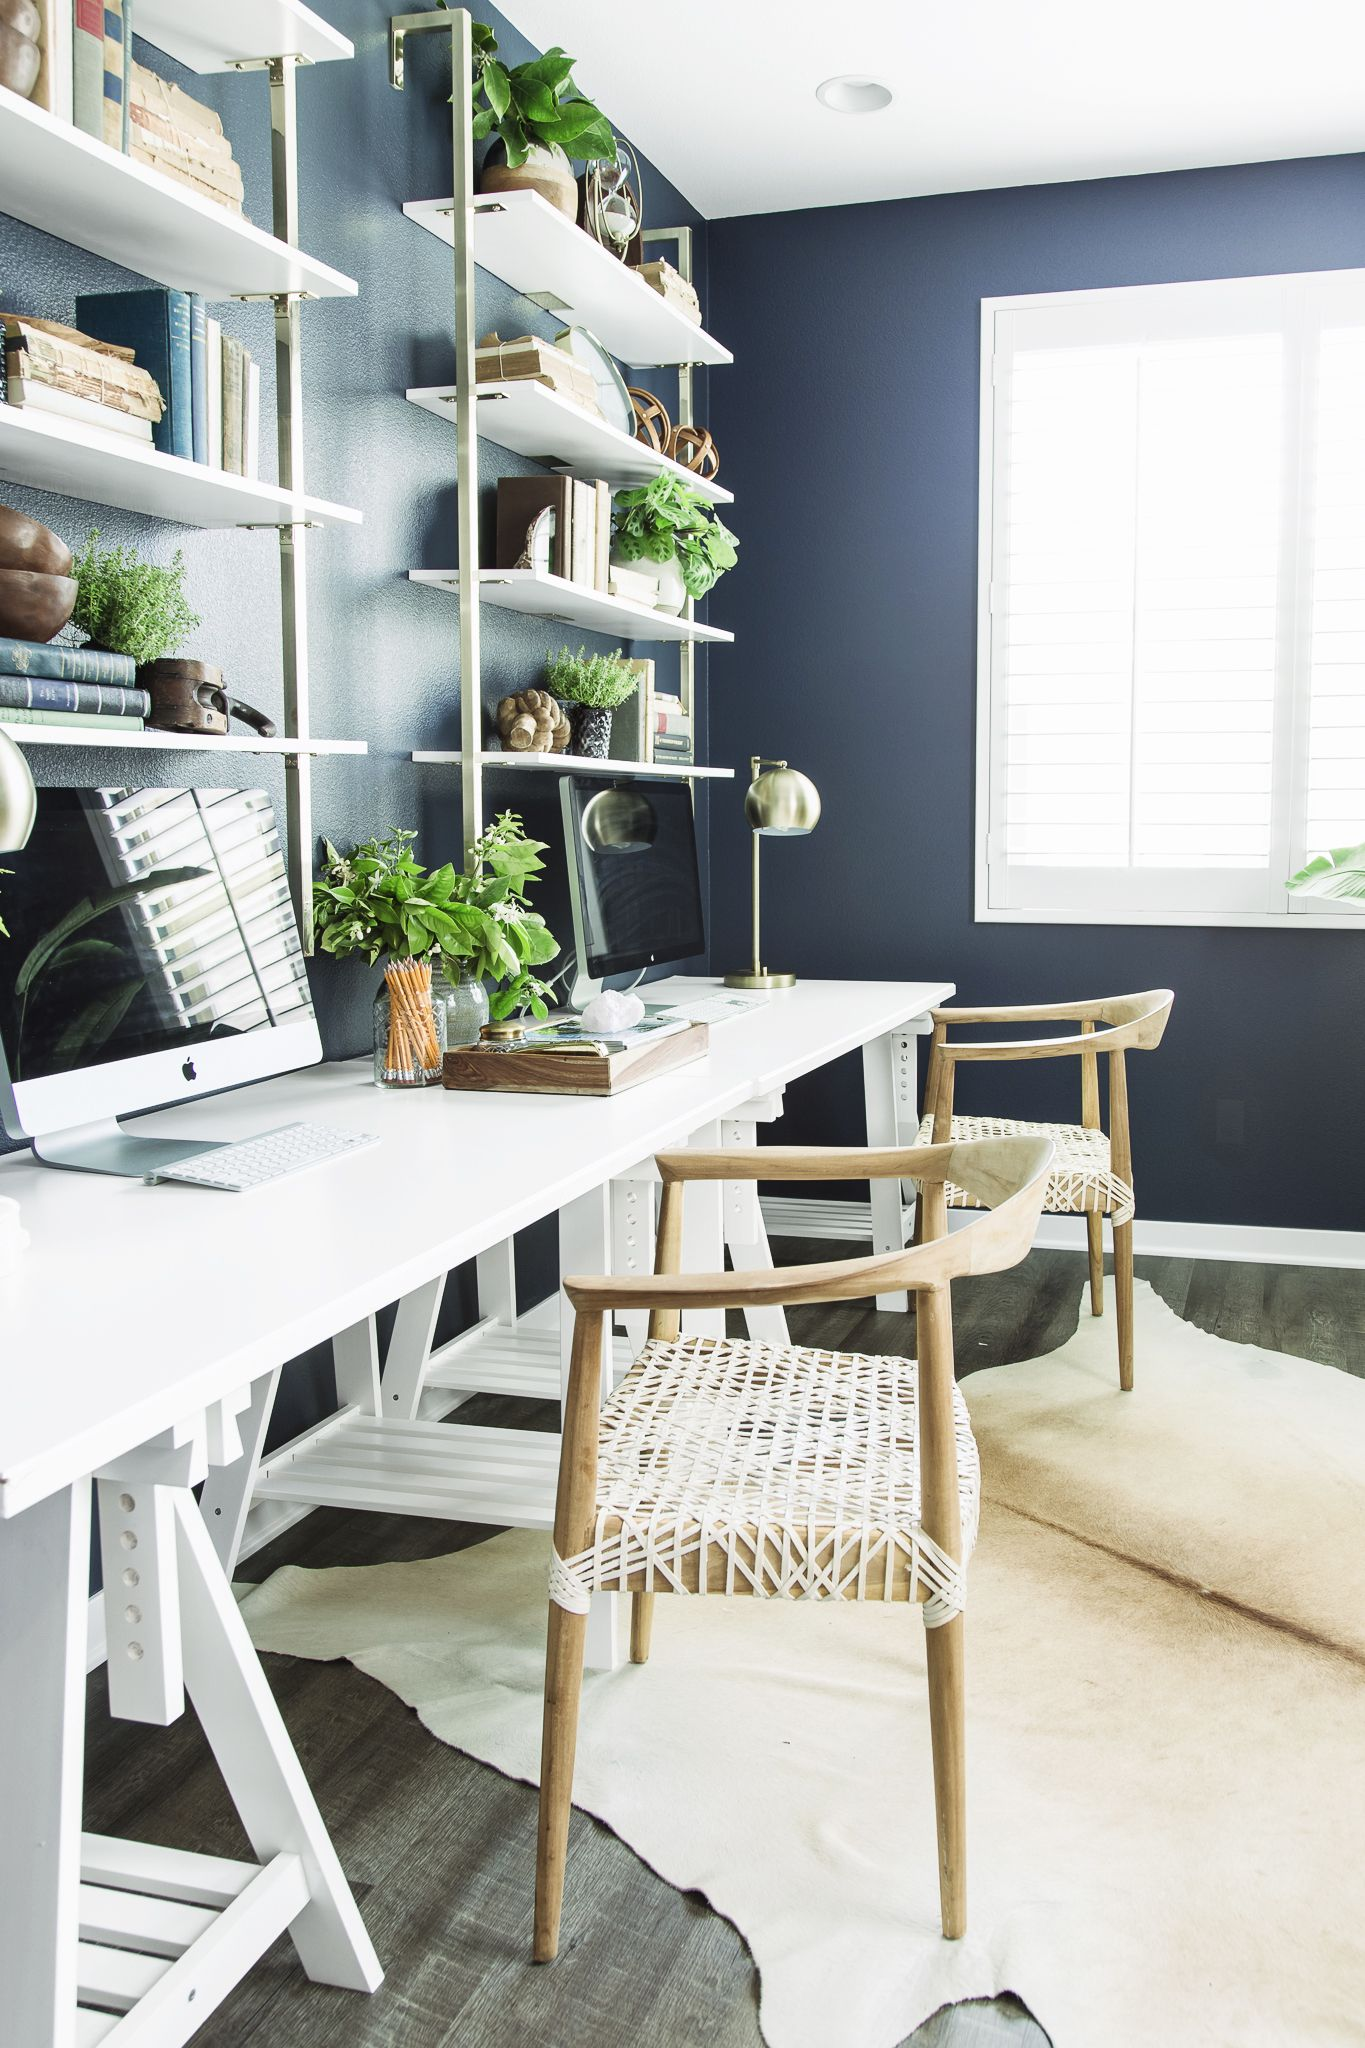 25 Best Home Office Ideas - How to Decorate a Home Office